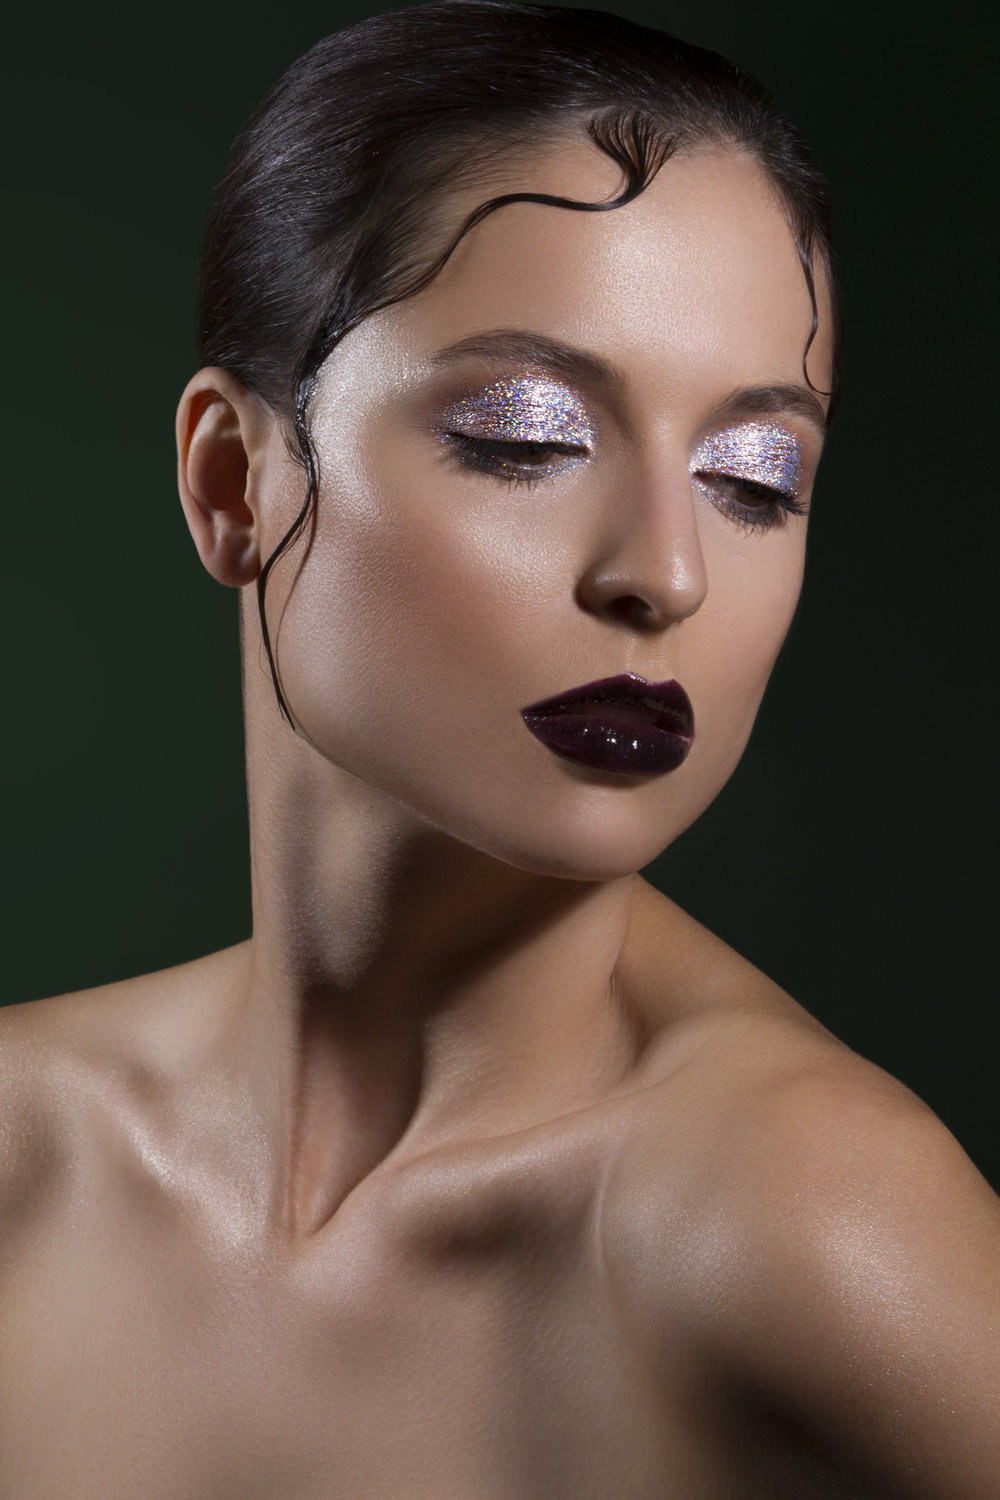 Magistrale_Issue2_Beautytorial_look3_0368.jpg